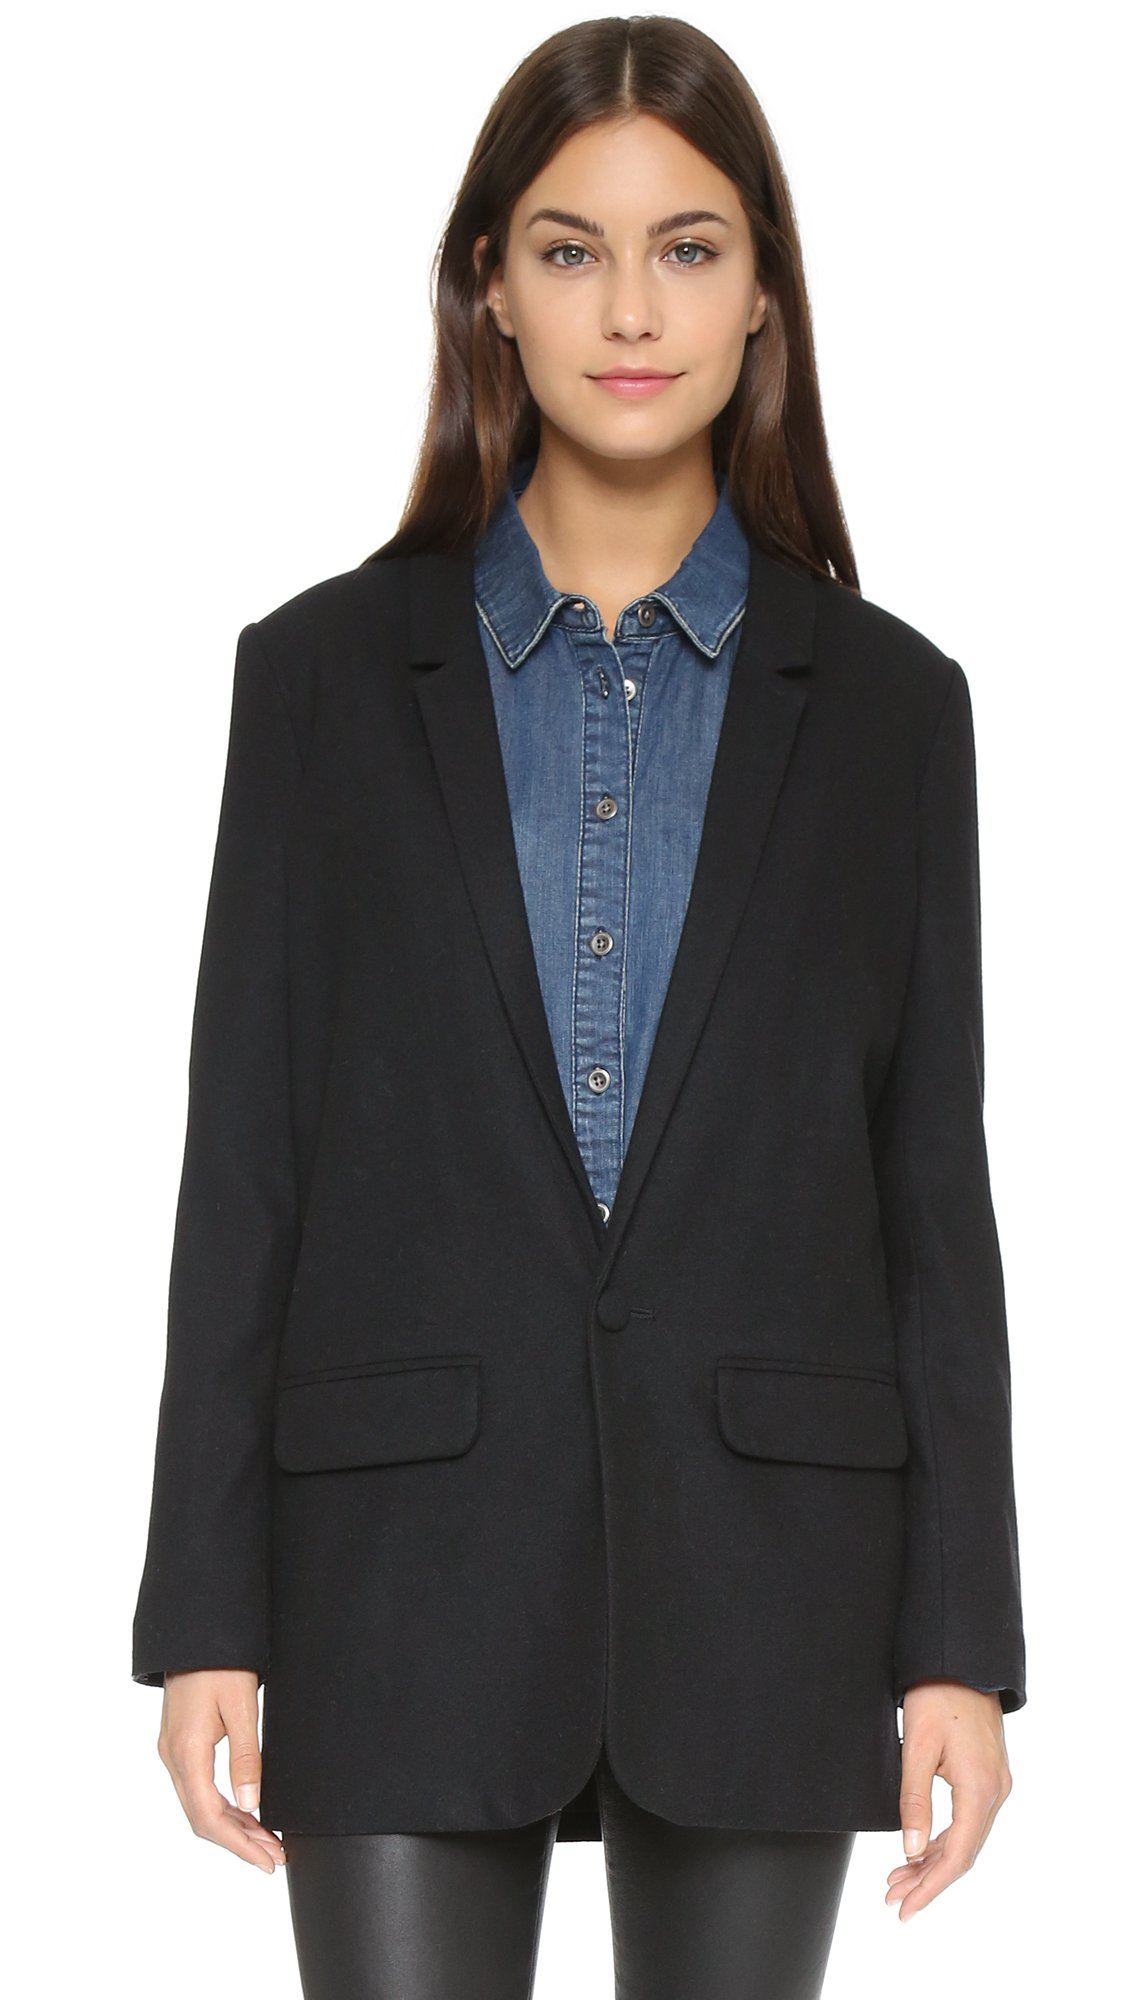 Shop for Boyfriend Blazer and more Plus Size Jackets & Blazers from fullbeauty. Your Online Fashion Mall for Sizes 12W to 44W $. $ HELP Log in or register My Account order status deals women lingerie shoes & Accessories swim men home clearance.